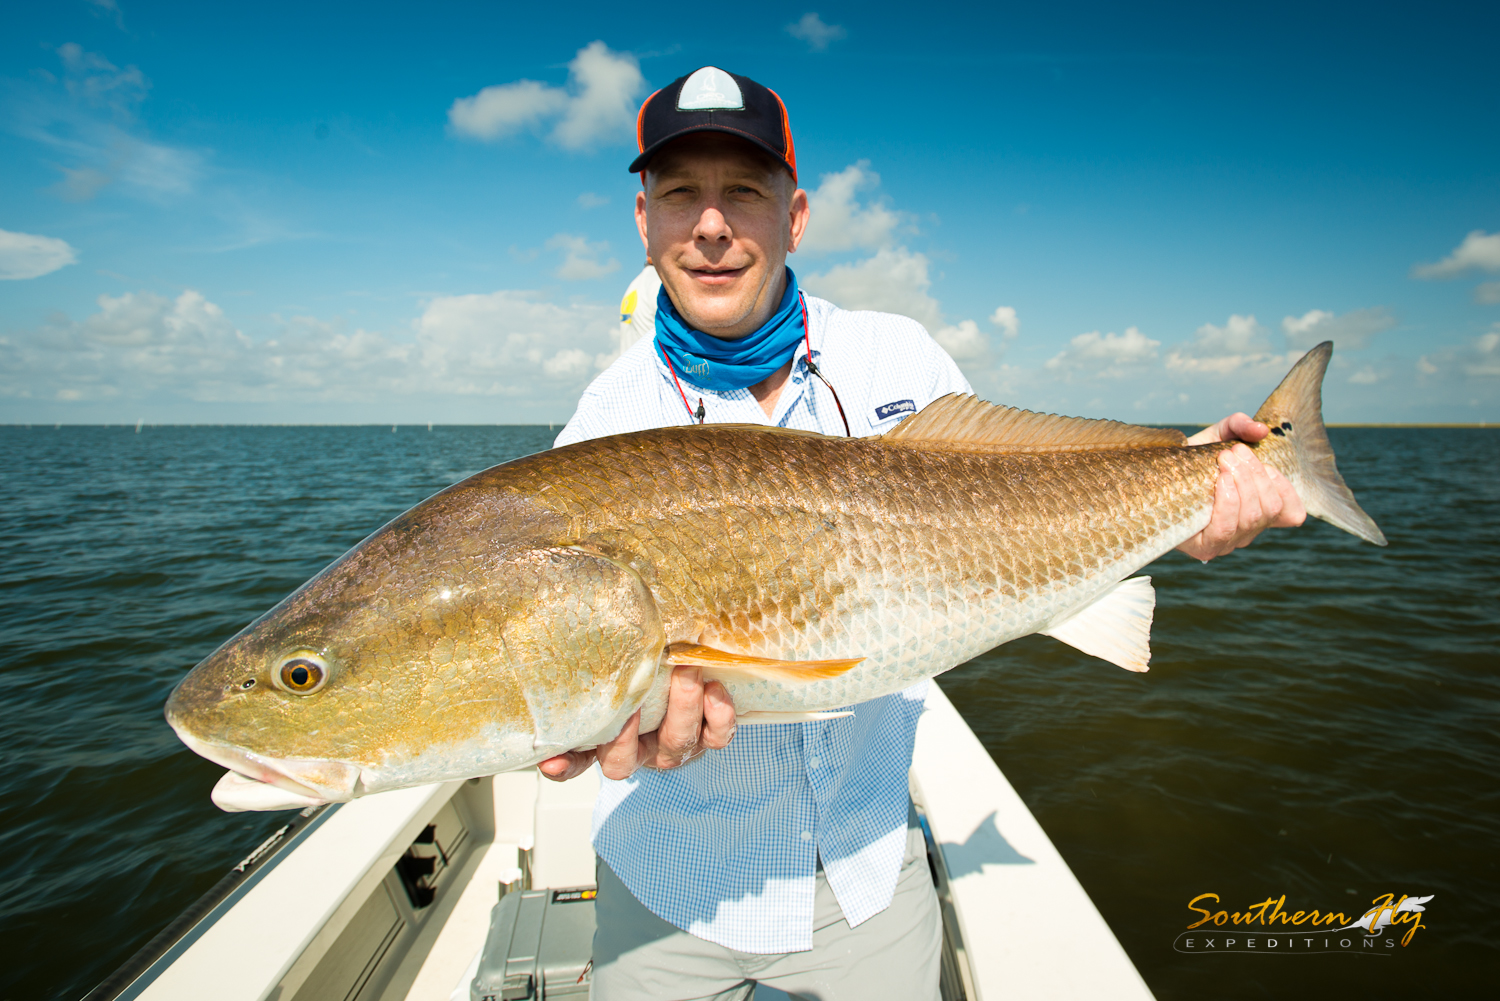 charter fishing guide new orleans la Southern Fly Expeditions